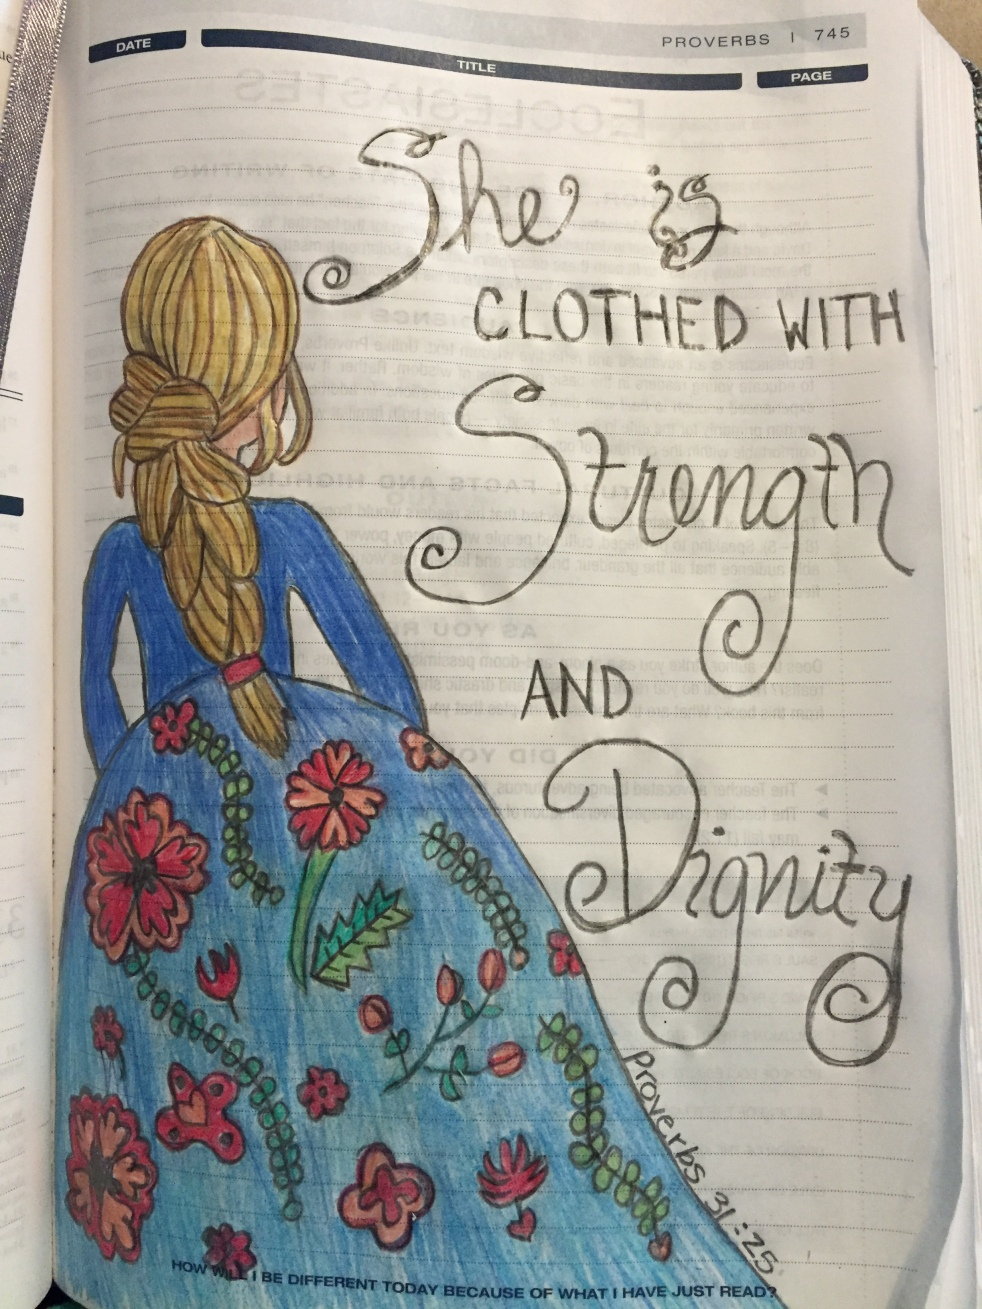 Proverbs 31:31 – Adventures of a Busy Mom